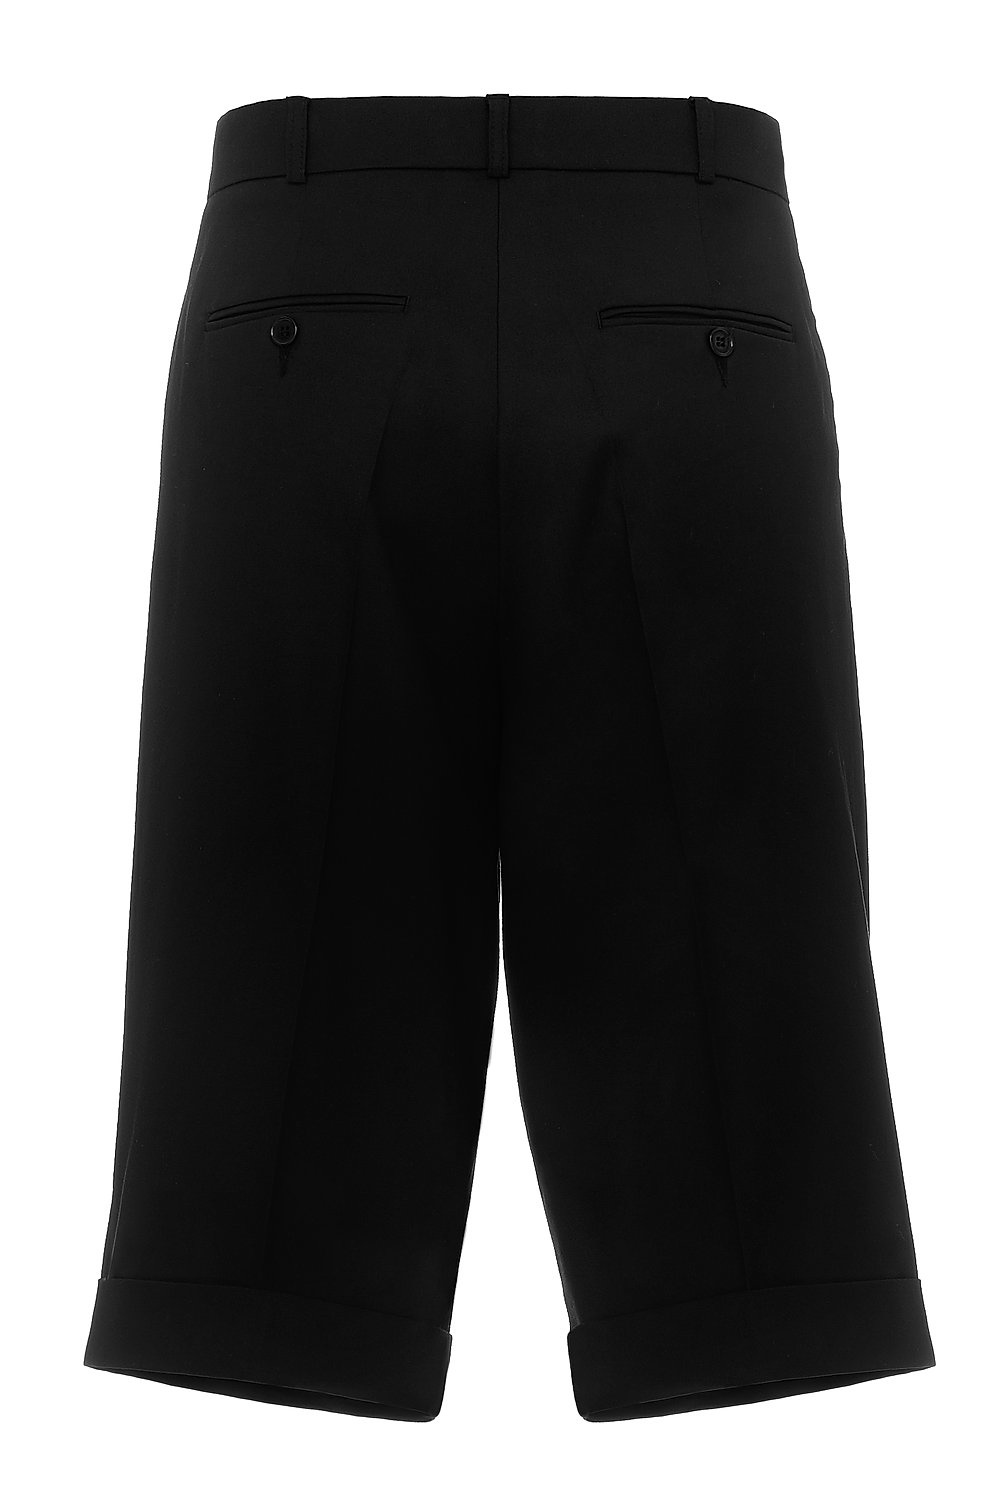 Tailored Shorts-4